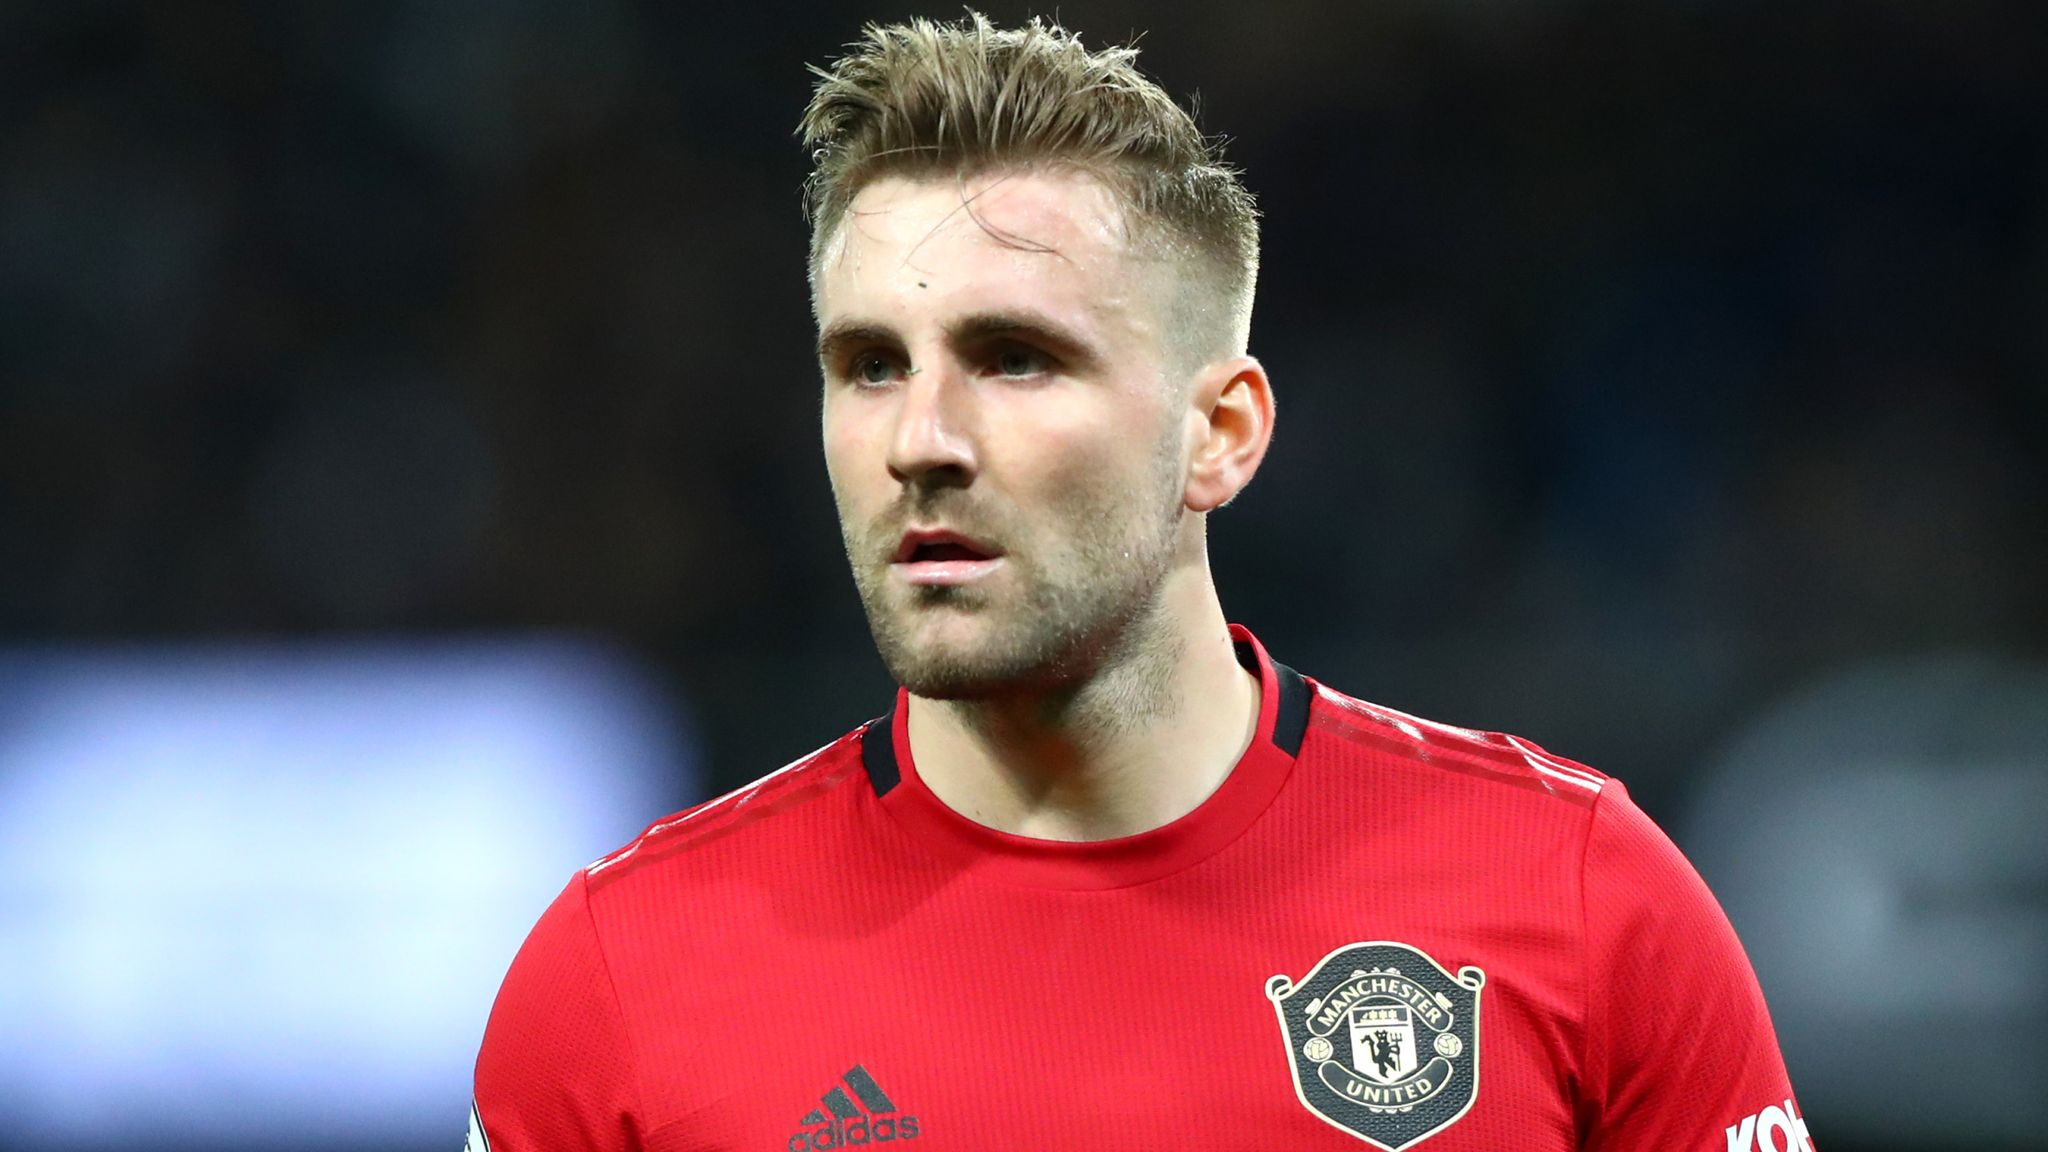 Luke Shaw says 2019/20 season should be be declared null and void if it  can't resume   Football News   Sky Sports